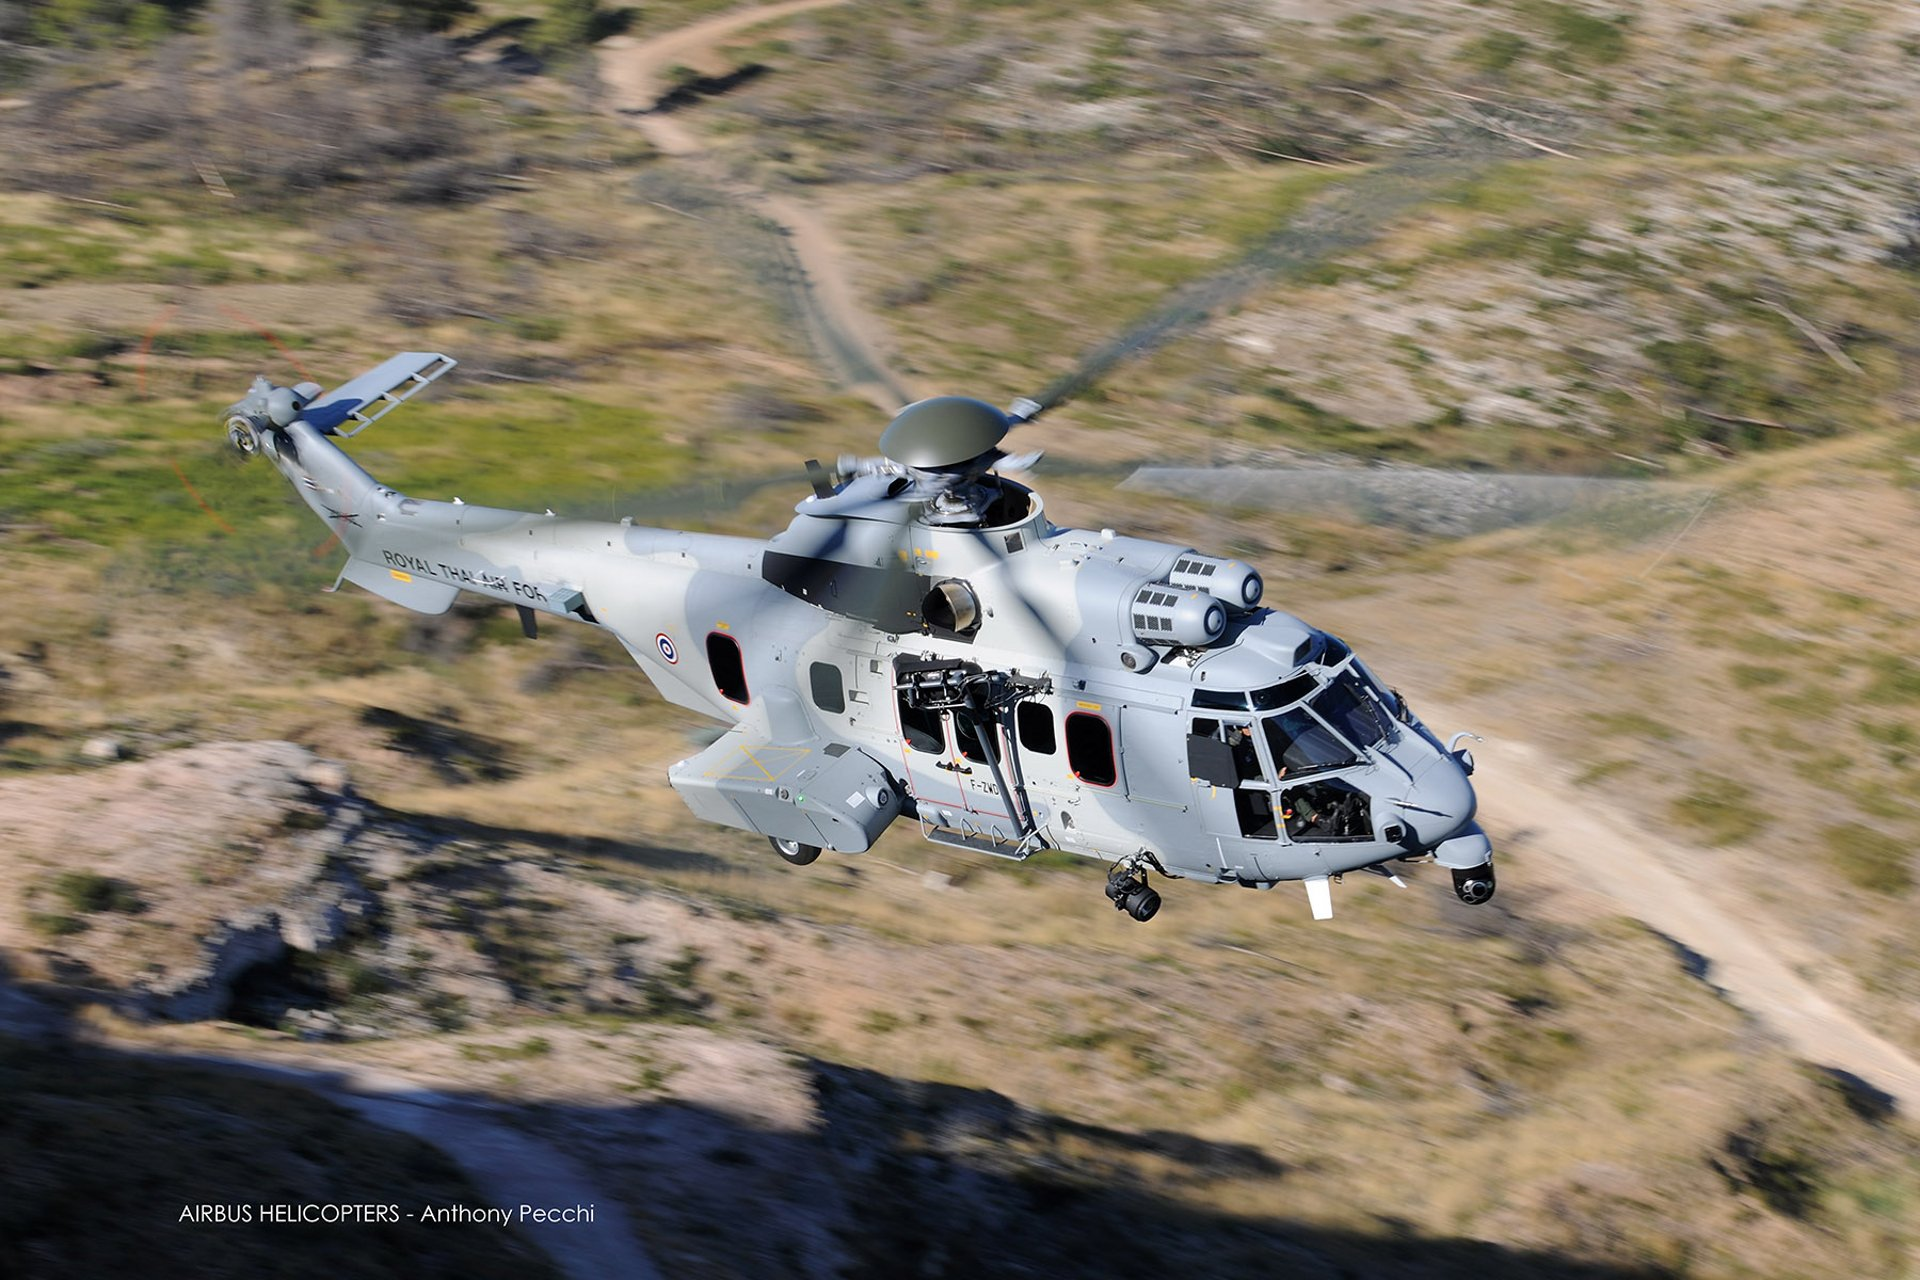 The 11-ton-catergory twin-turbine H225M is relied  upon as a force multiplier by many air forces worldwide thanks to its outstanding endurance and fast cruise speed.